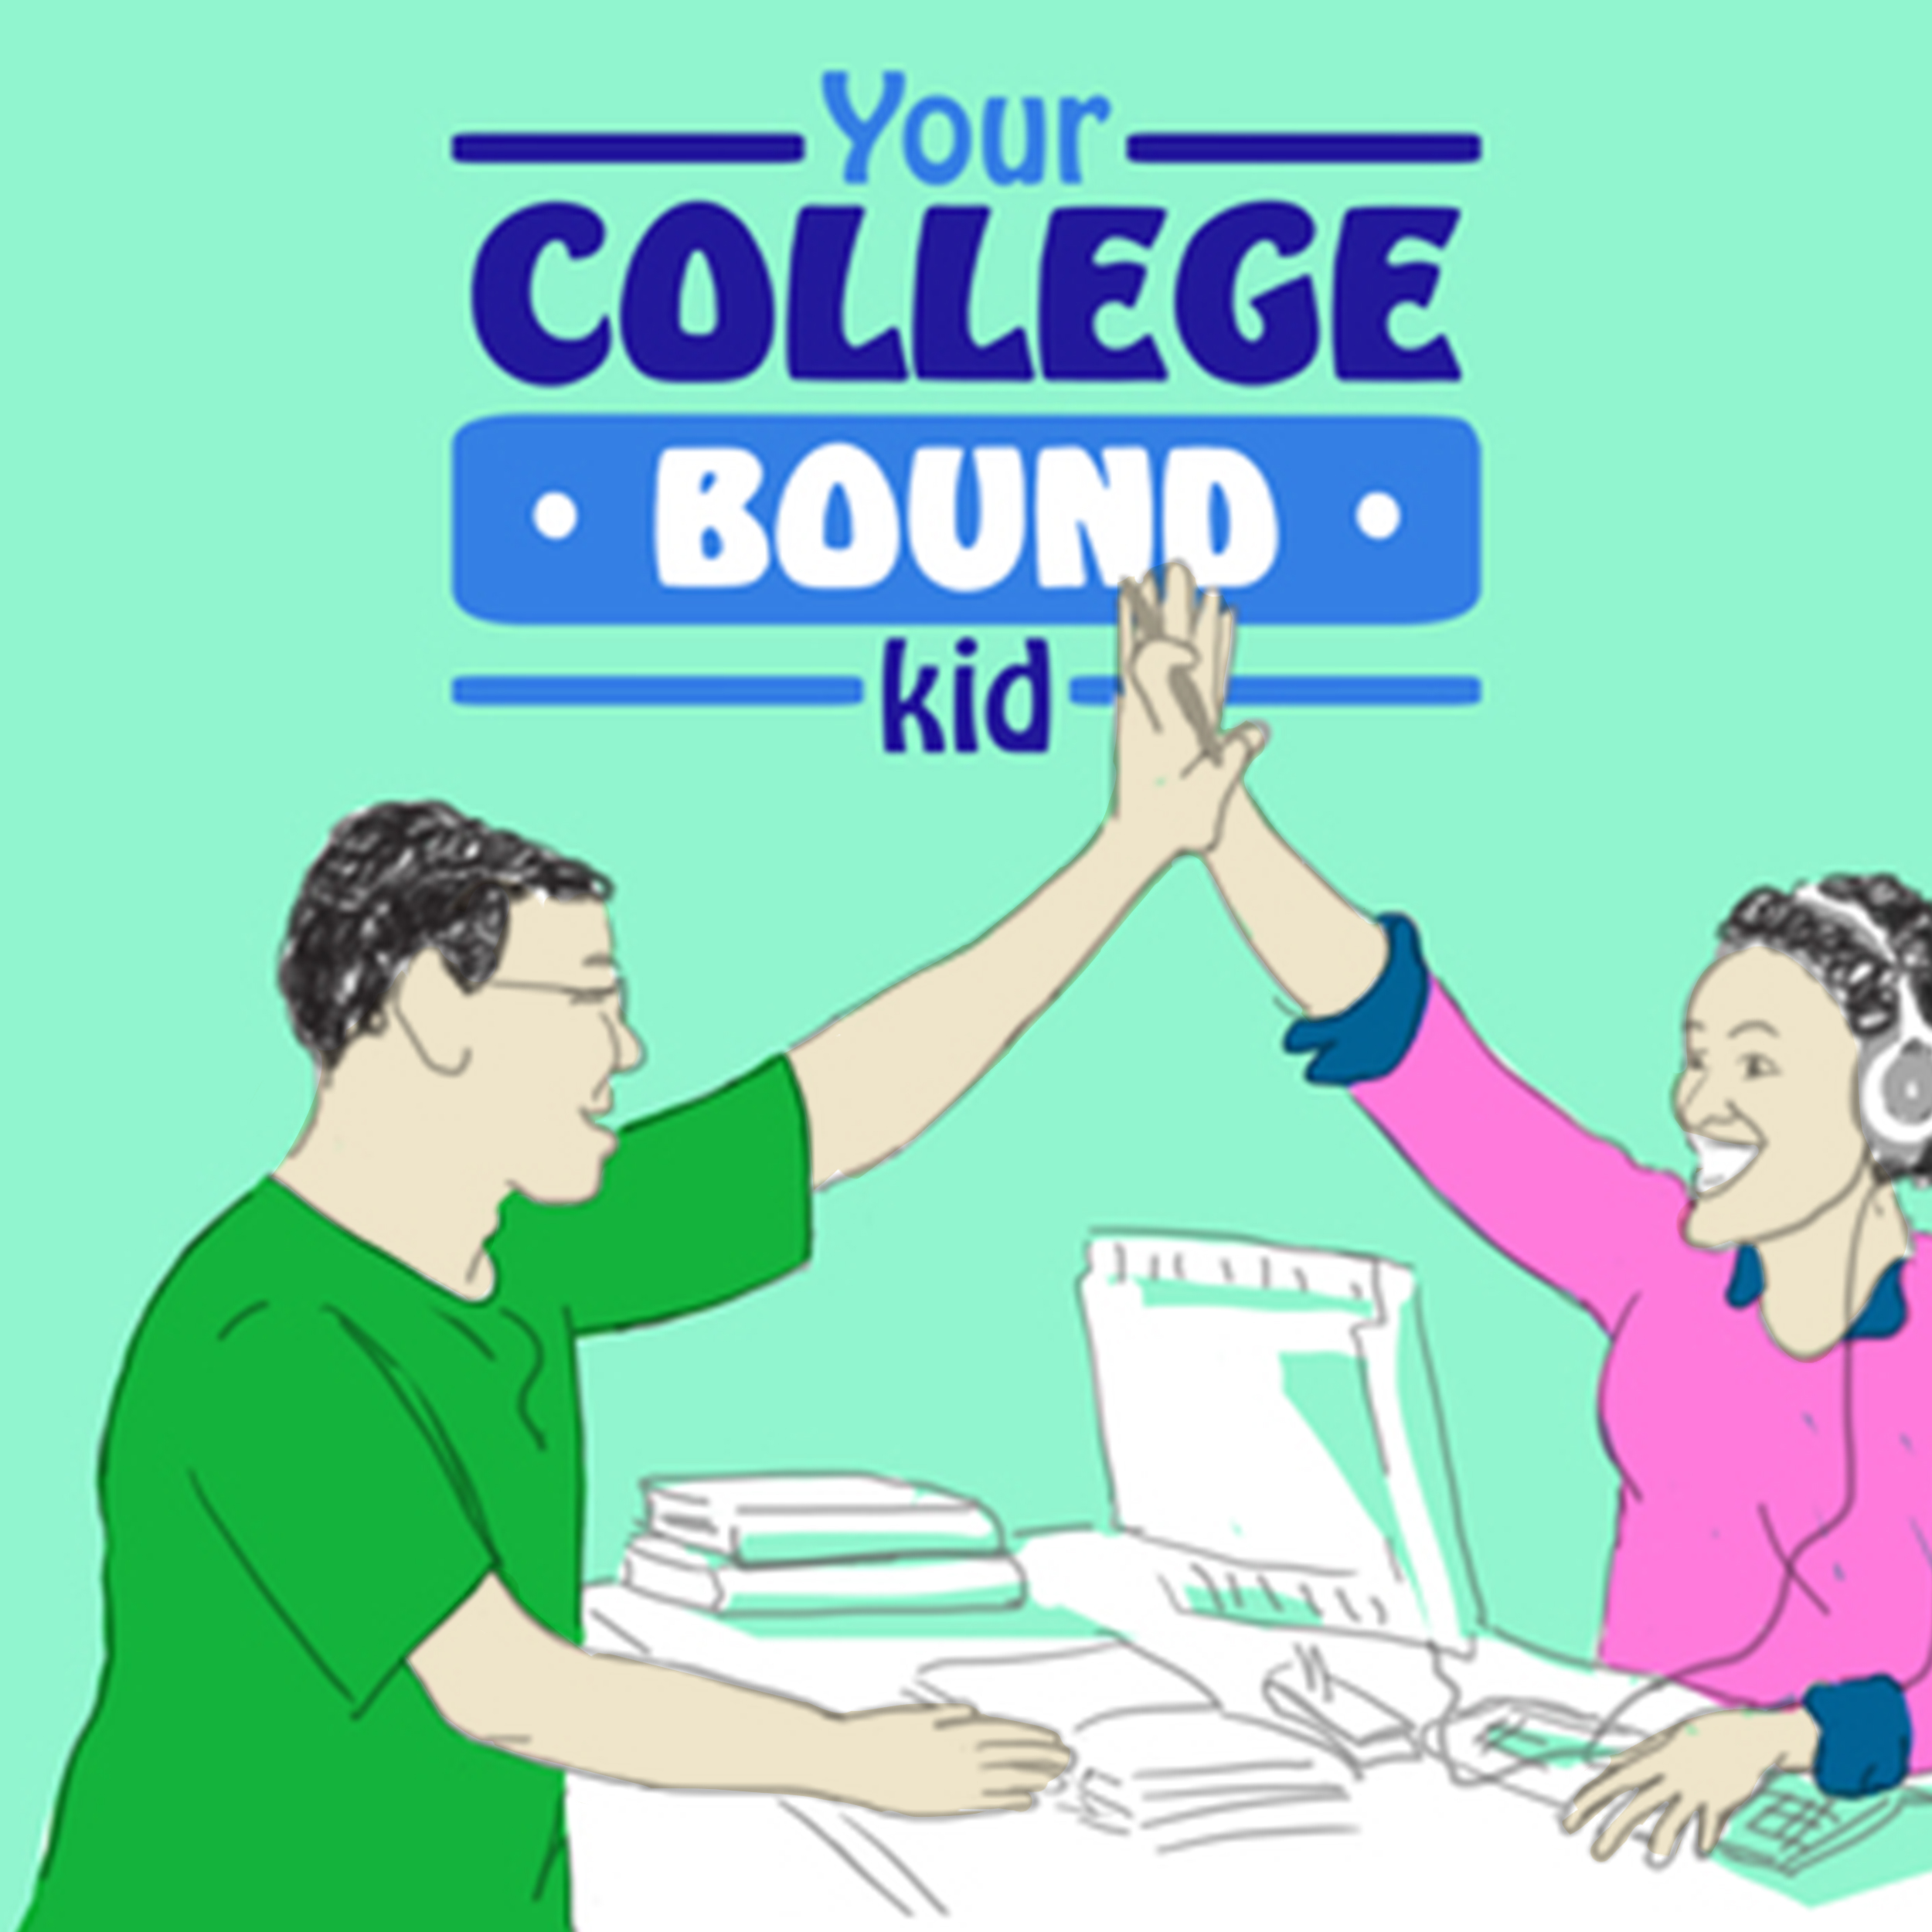 Your College Bound Kid | Scholarships, Admission, & Financial Aid Strategies